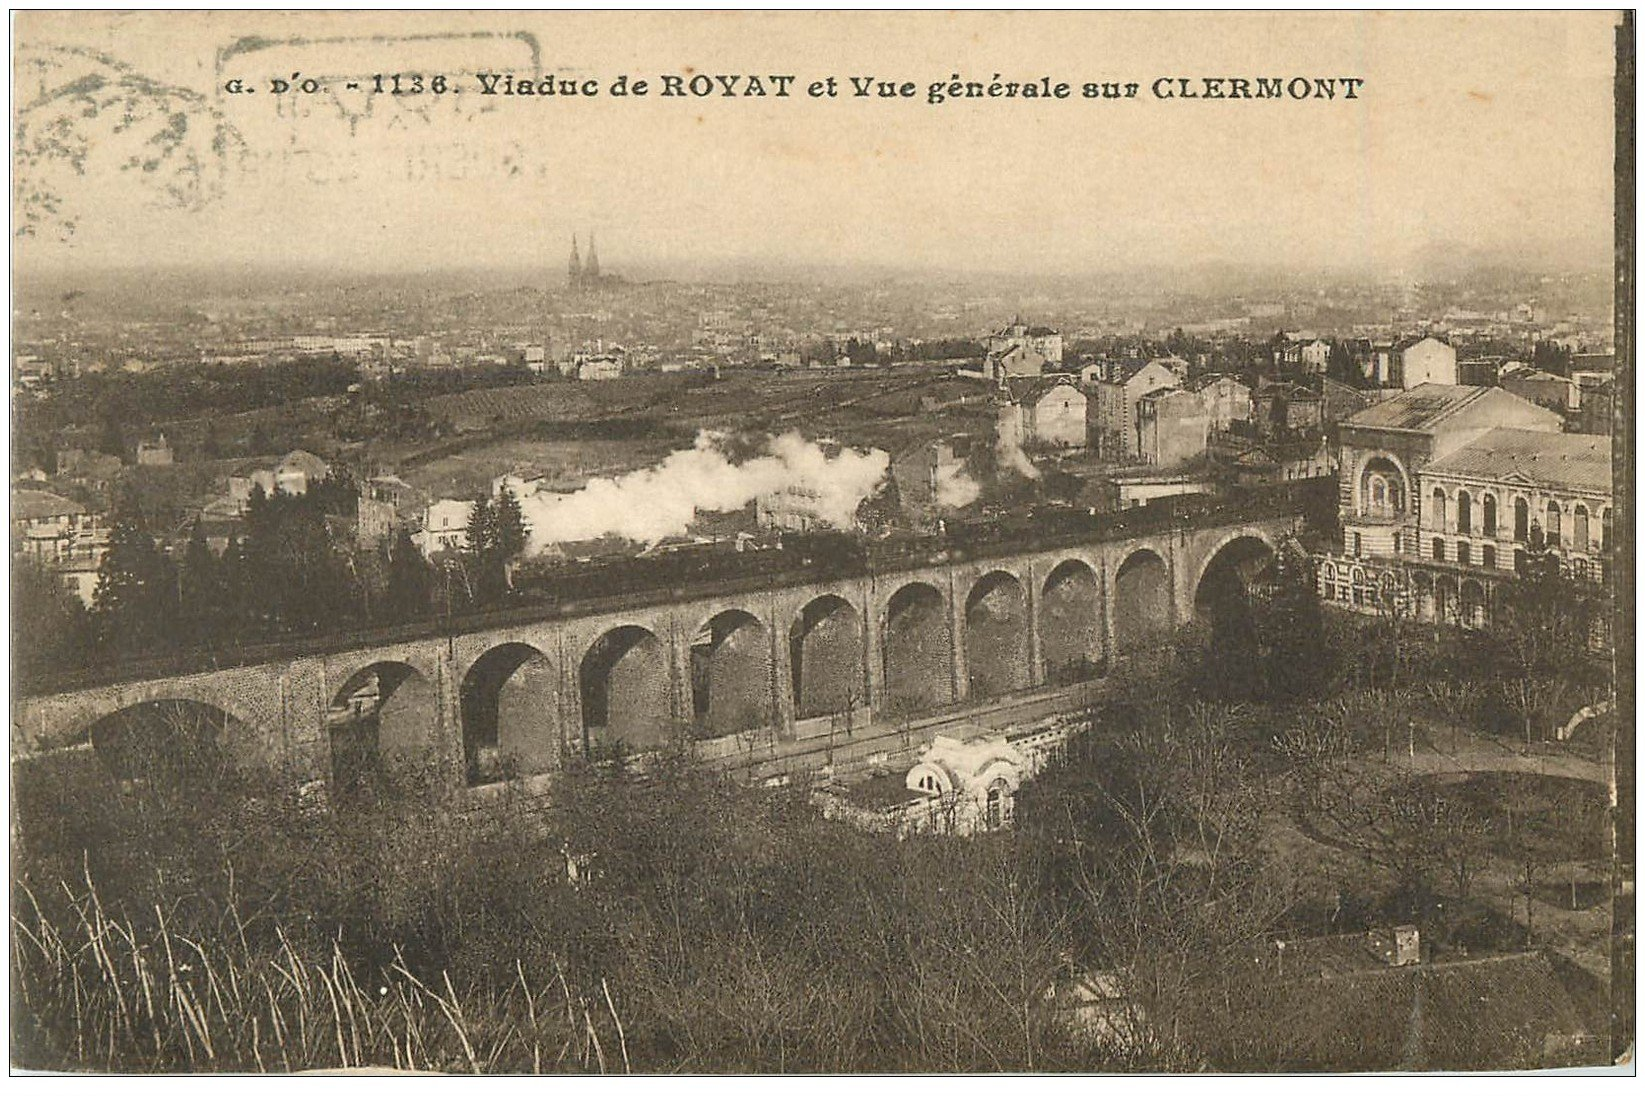 63 clermont ferrand lot 10 cpa train viaduc place - Decoration jardin exterieur fontaine clermont ferrand ...